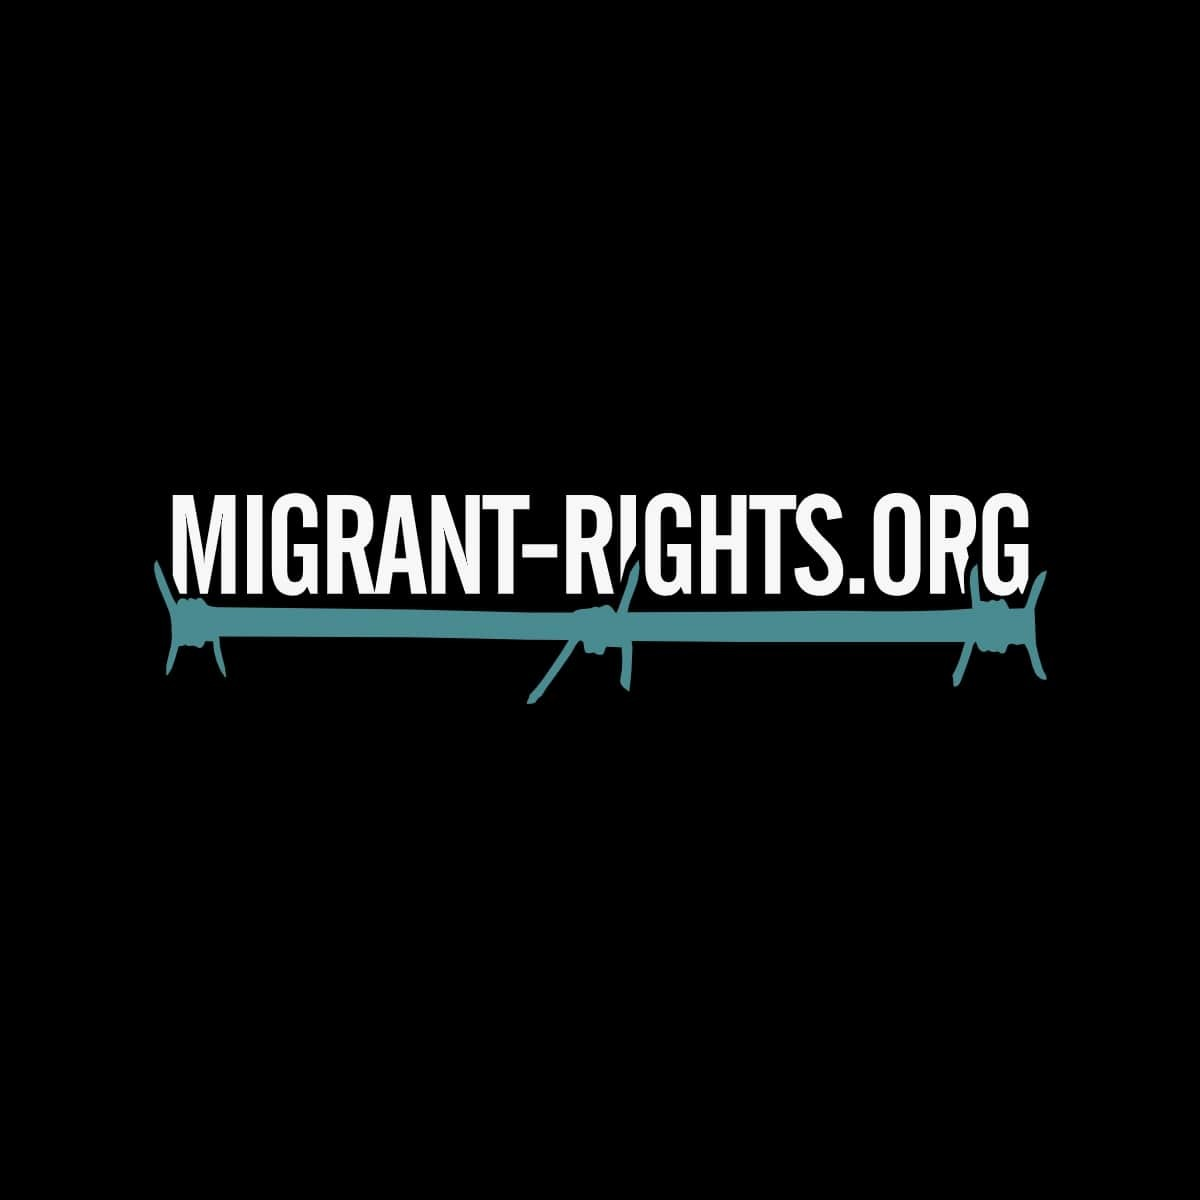 Migrant-Rights.org logo, (Migrant-Rights.org, accessed on 28 September 2020, https://www.migrant-rights.org/)